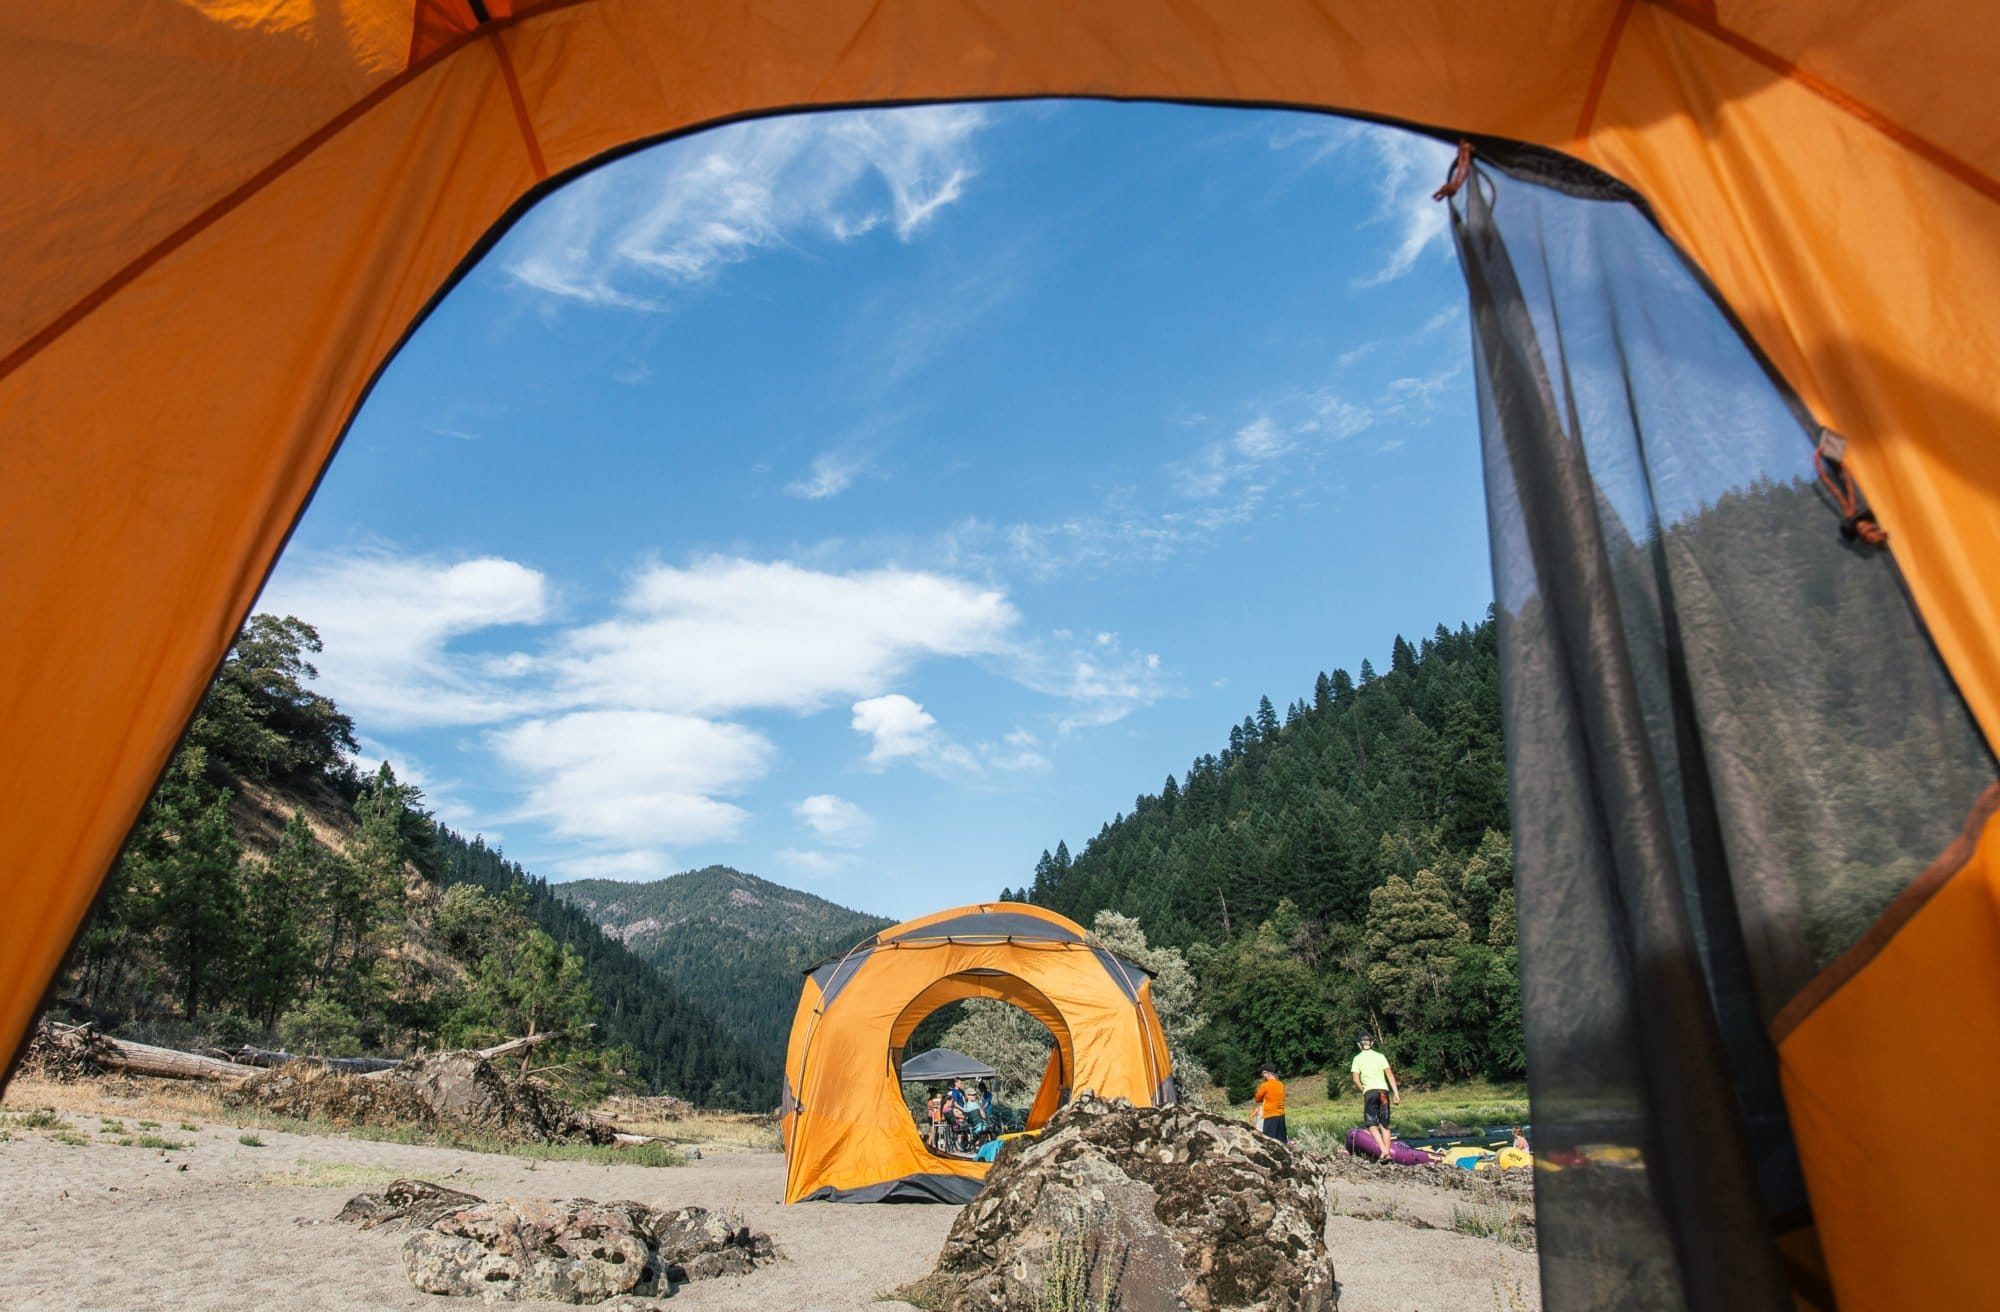 First person view from one tent to another during a camp